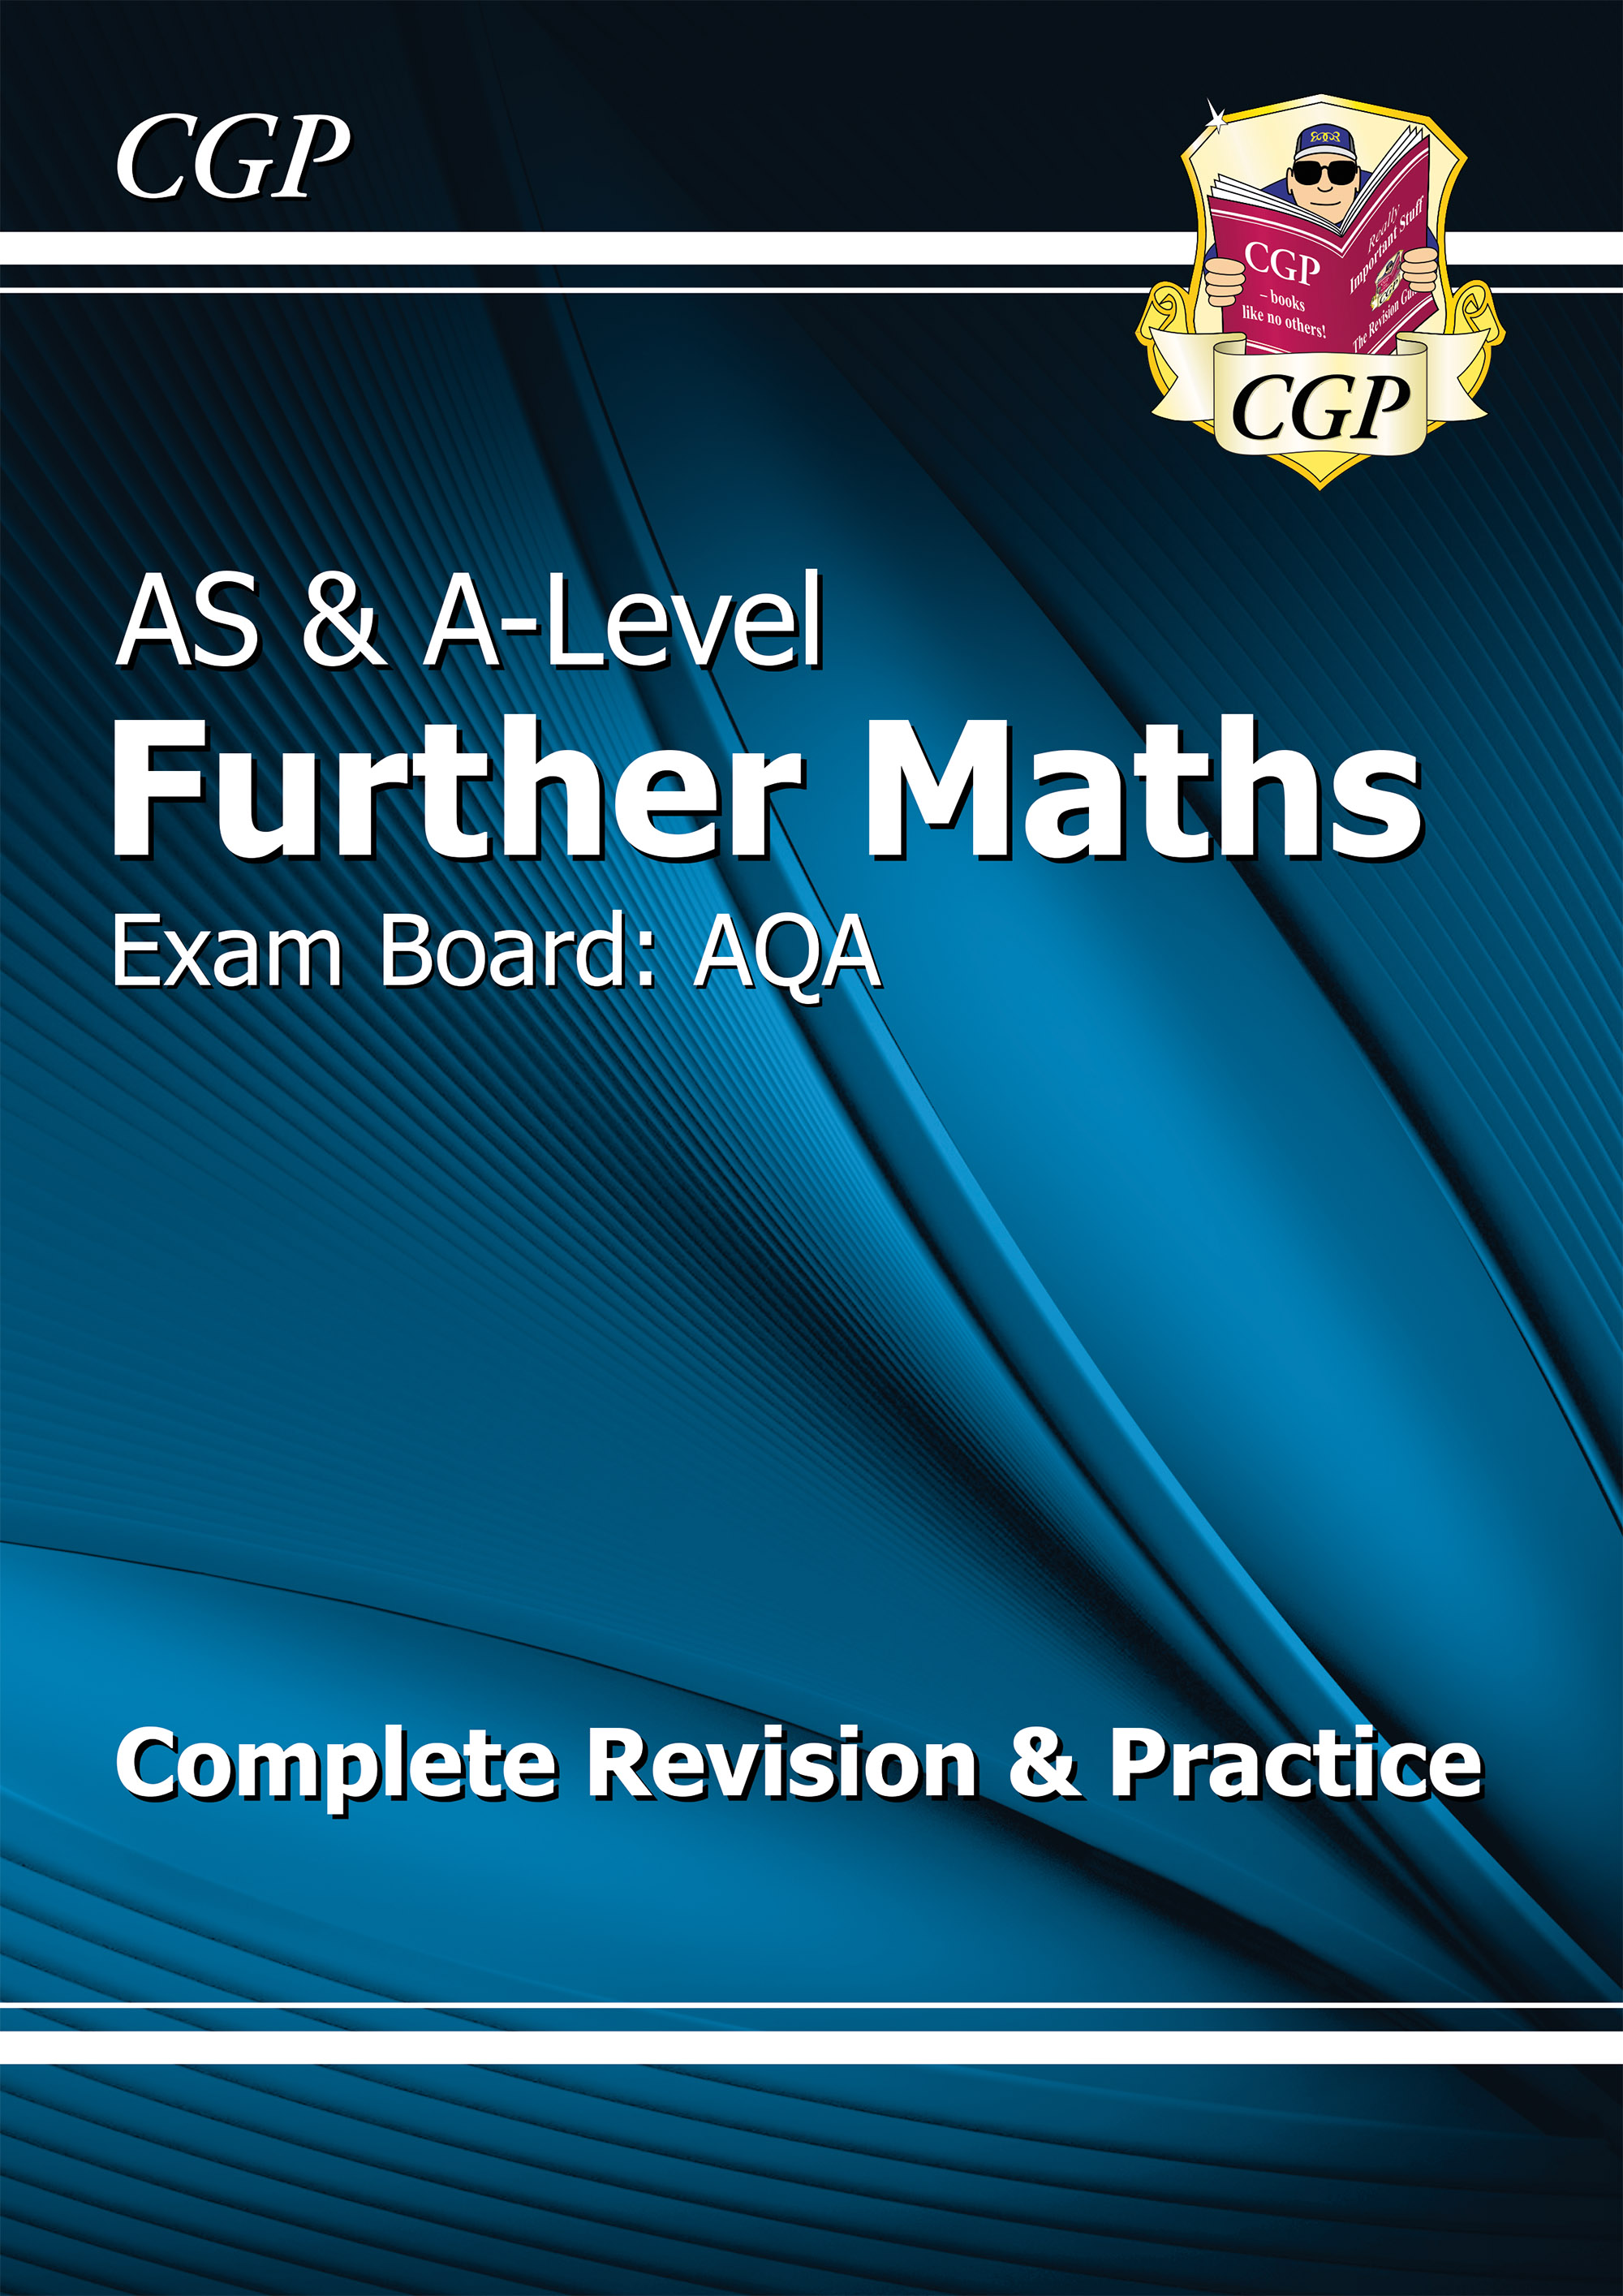 MFAR71DK - New AS & A-Level Further Maths for AQA: Complete Revision & Practice